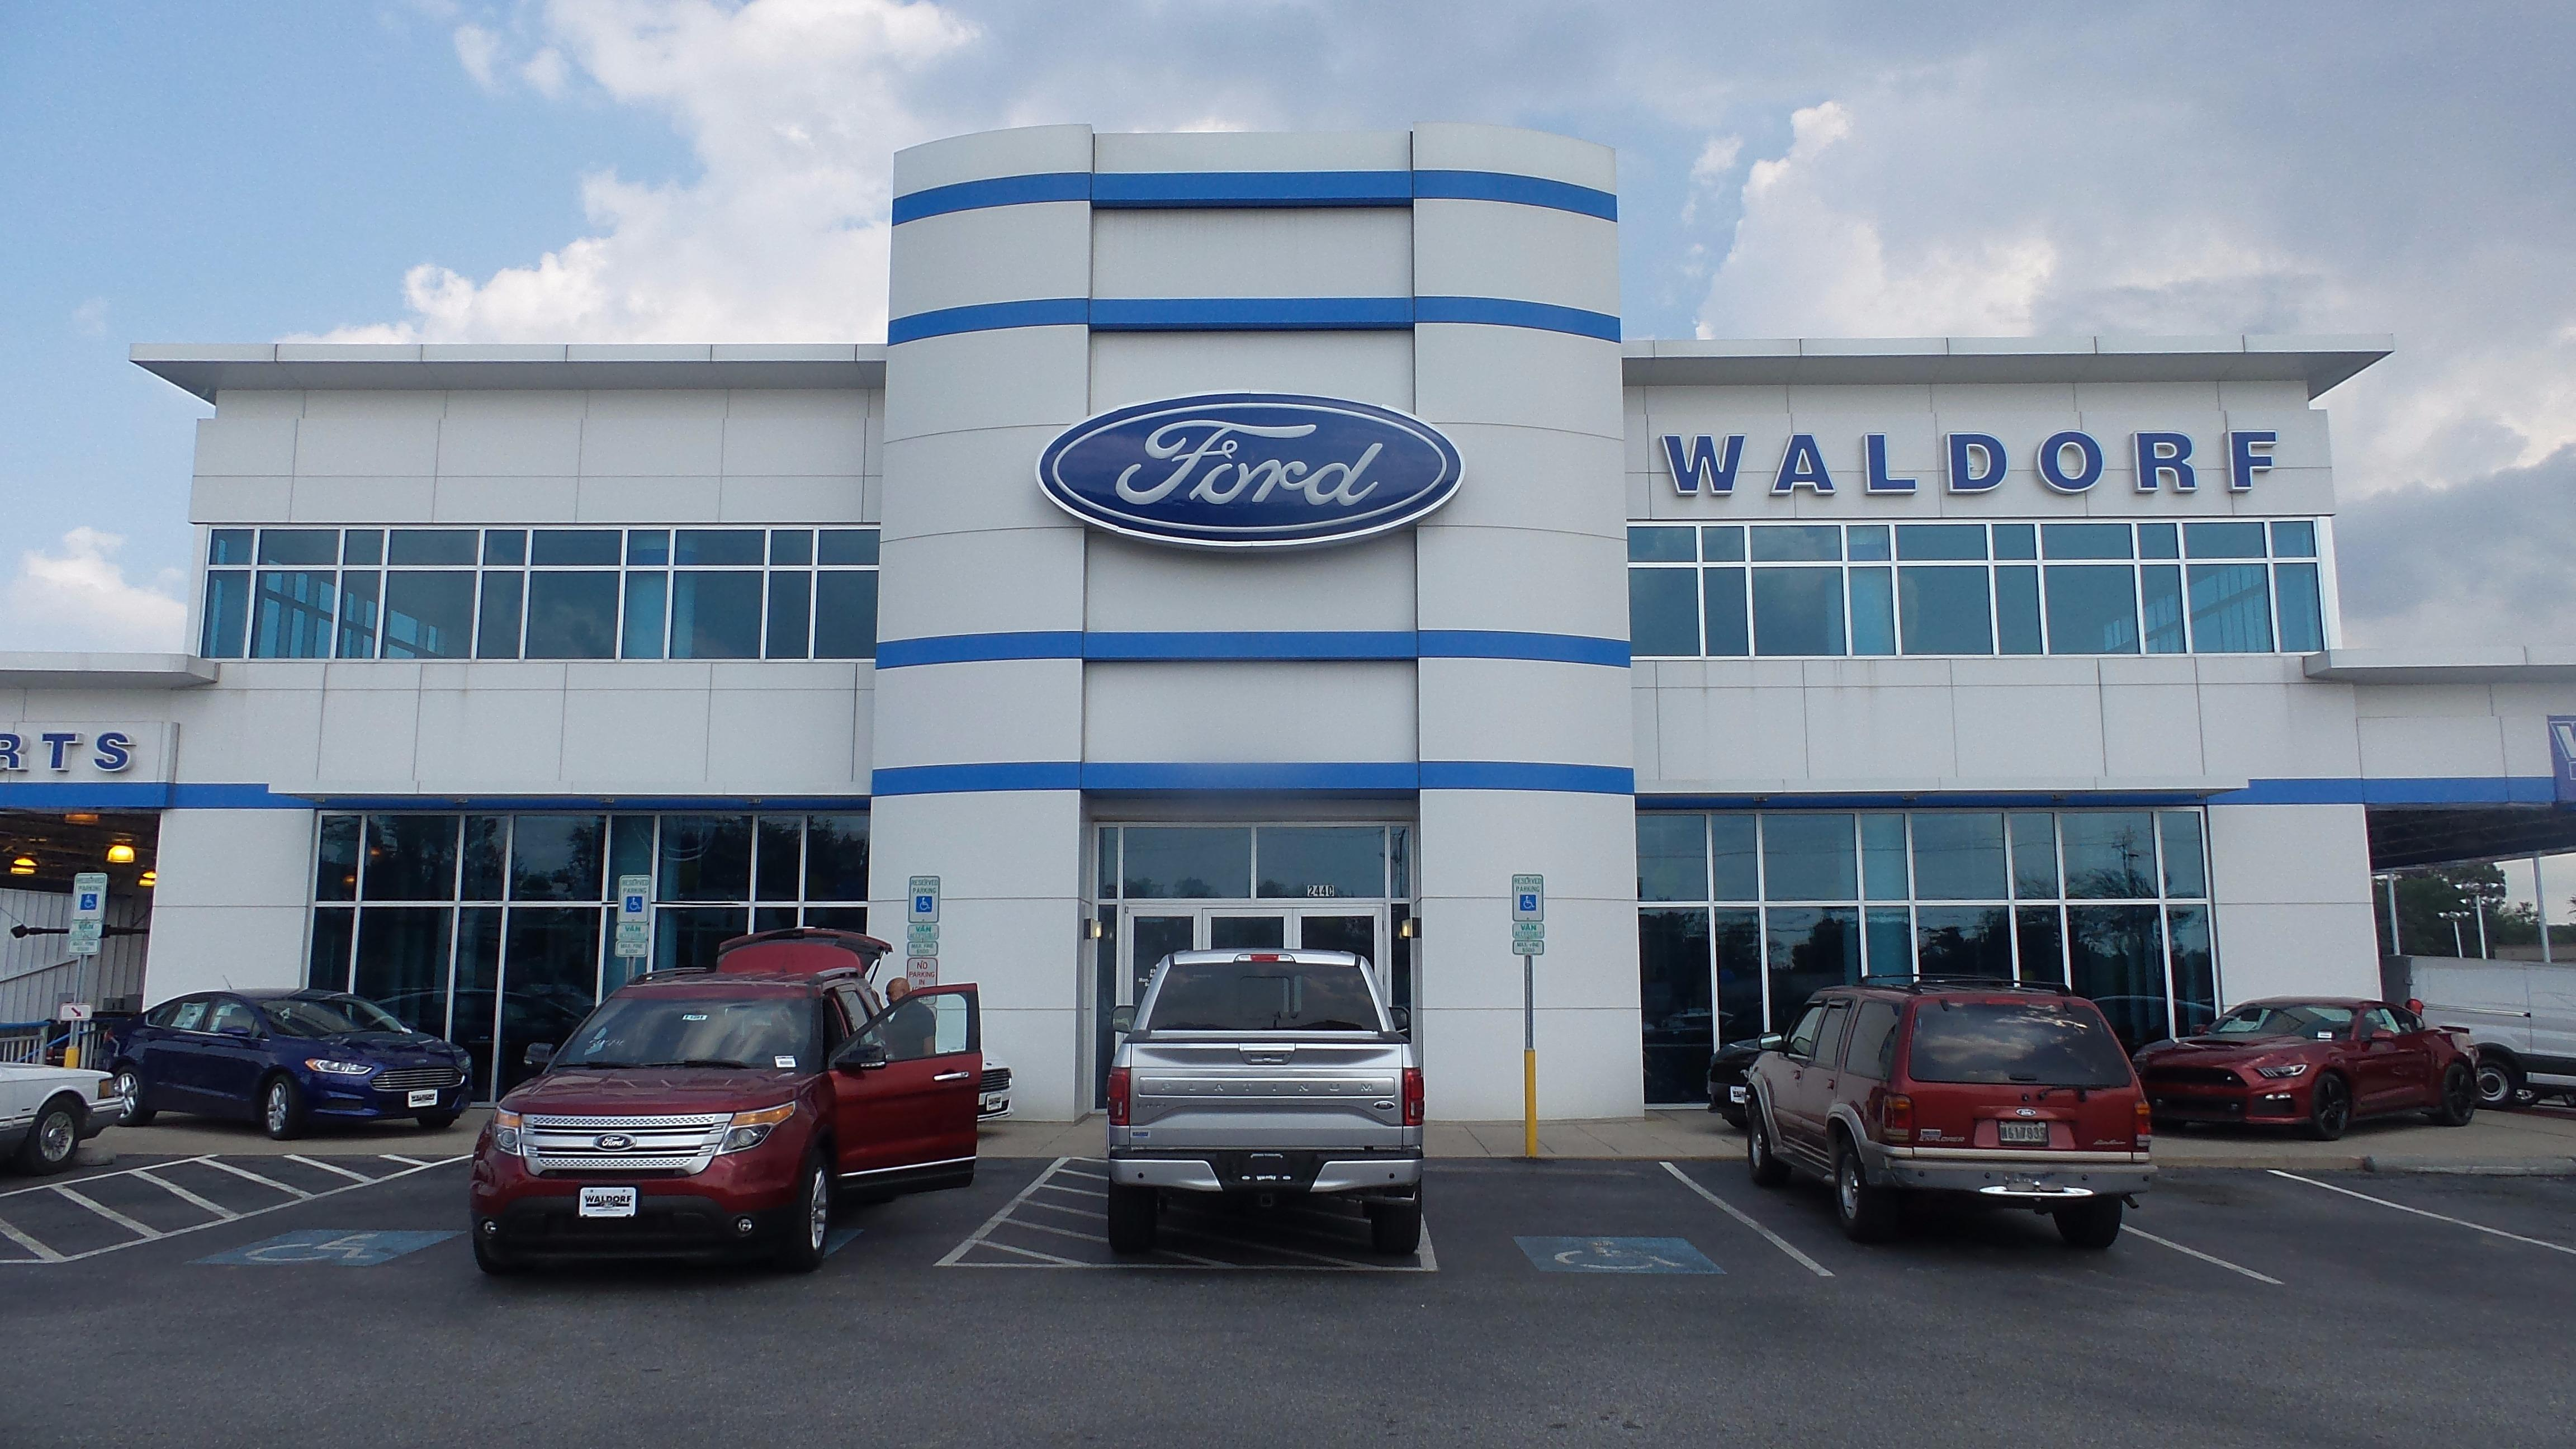 waldorf ford in waldorf md auto dealers yellow pages directory inc. Black Bedroom Furniture Sets. Home Design Ideas